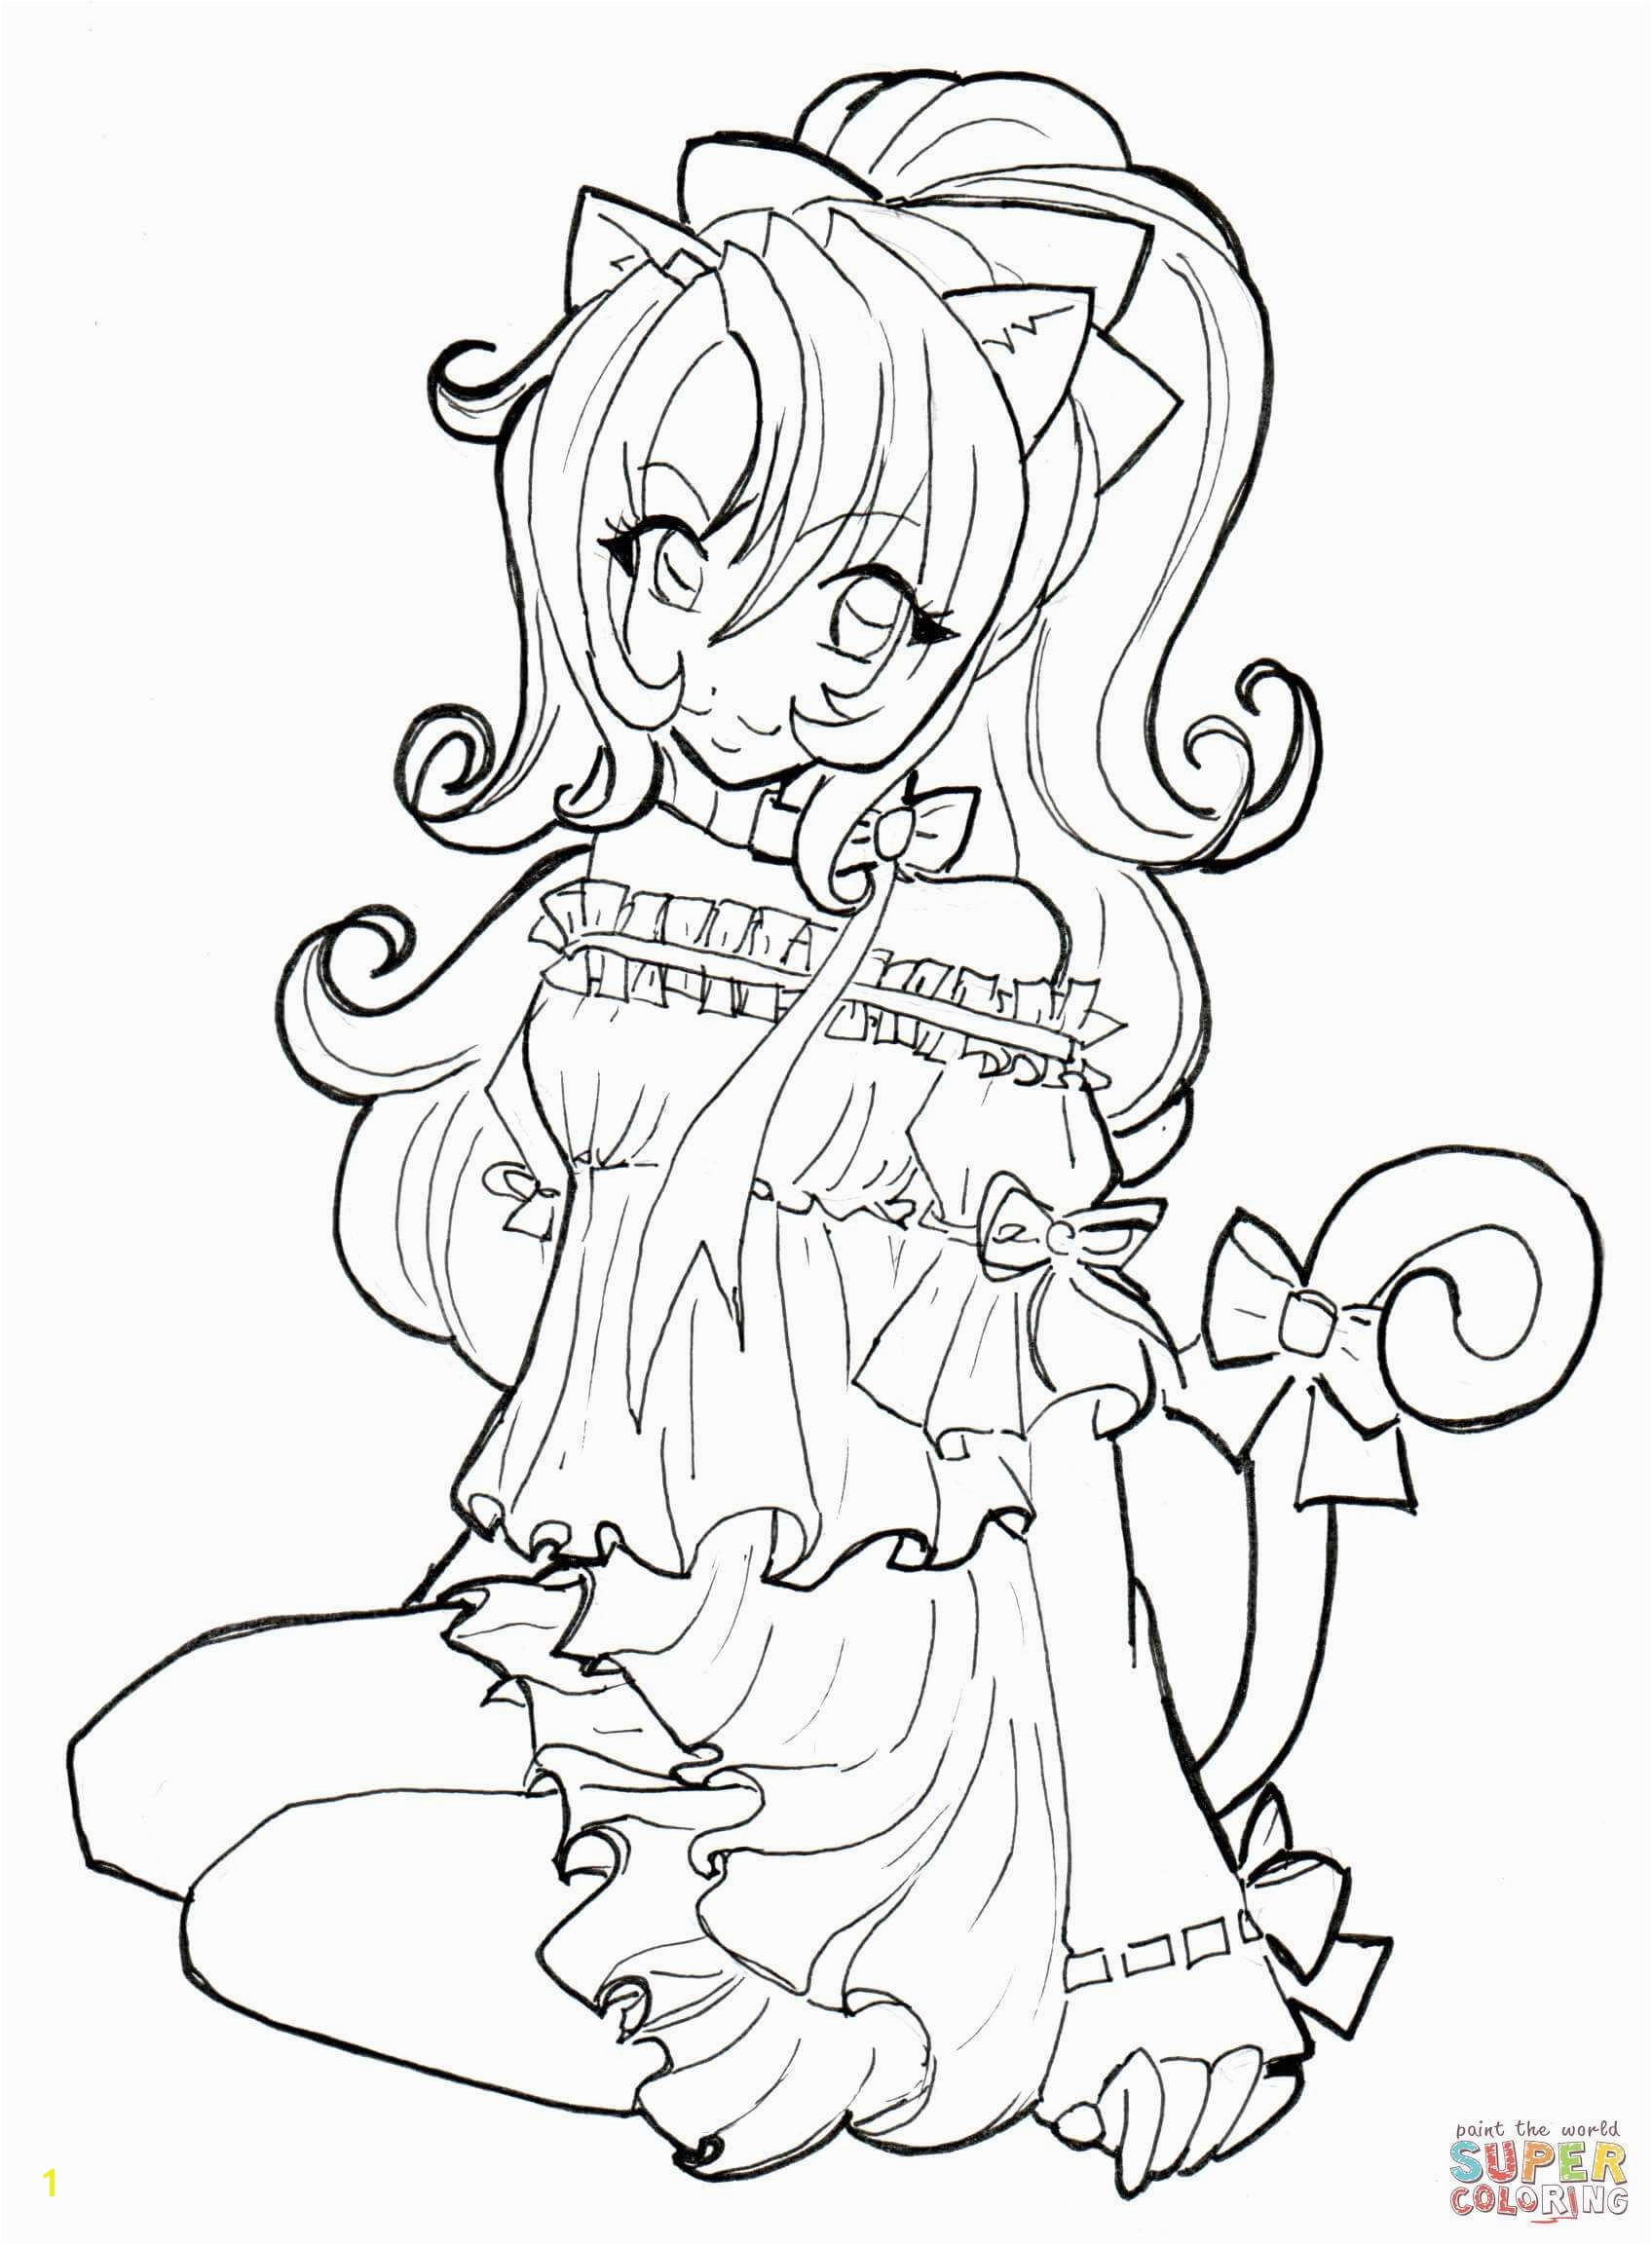 Cute Anime Chibi Girl Coloring Pages Best Witch Coloring Page Inspirational Crayola Pages 0d Coloring Page